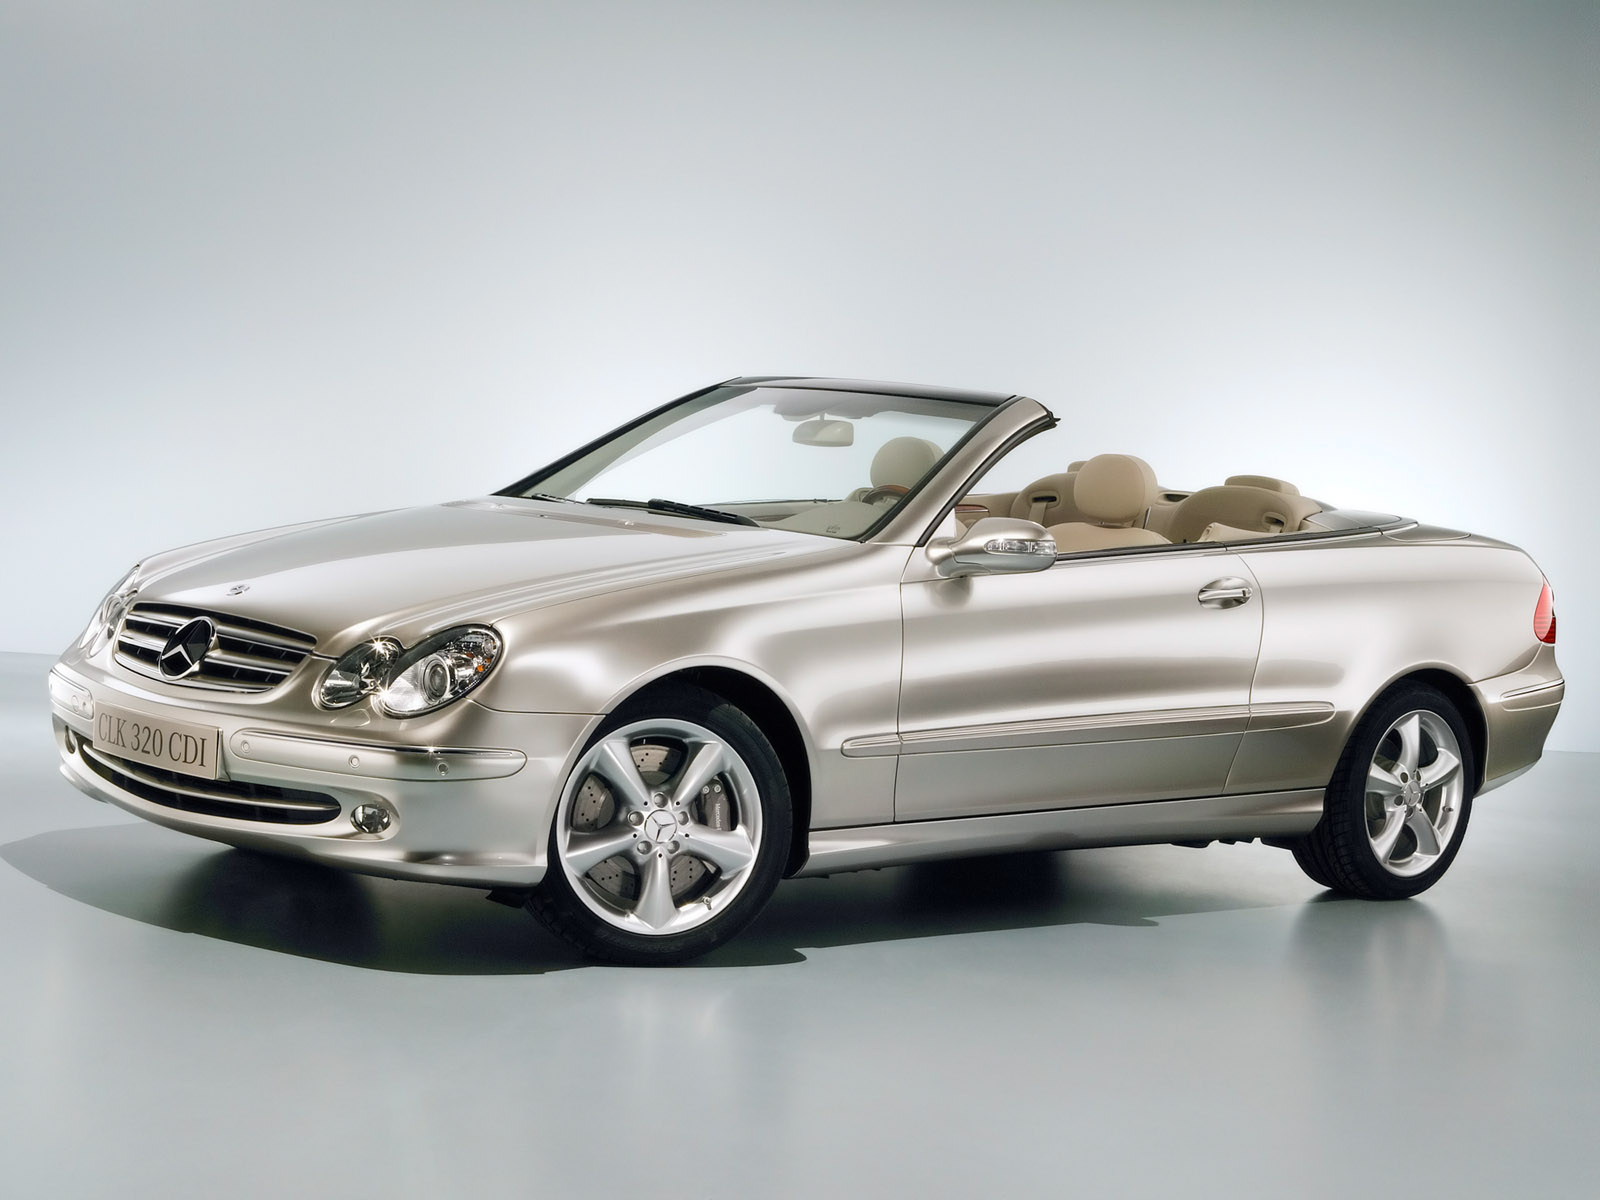 mercedes benz clk 320 cdi photos 8 on better parts ltd. Black Bedroom Furniture Sets. Home Design Ideas